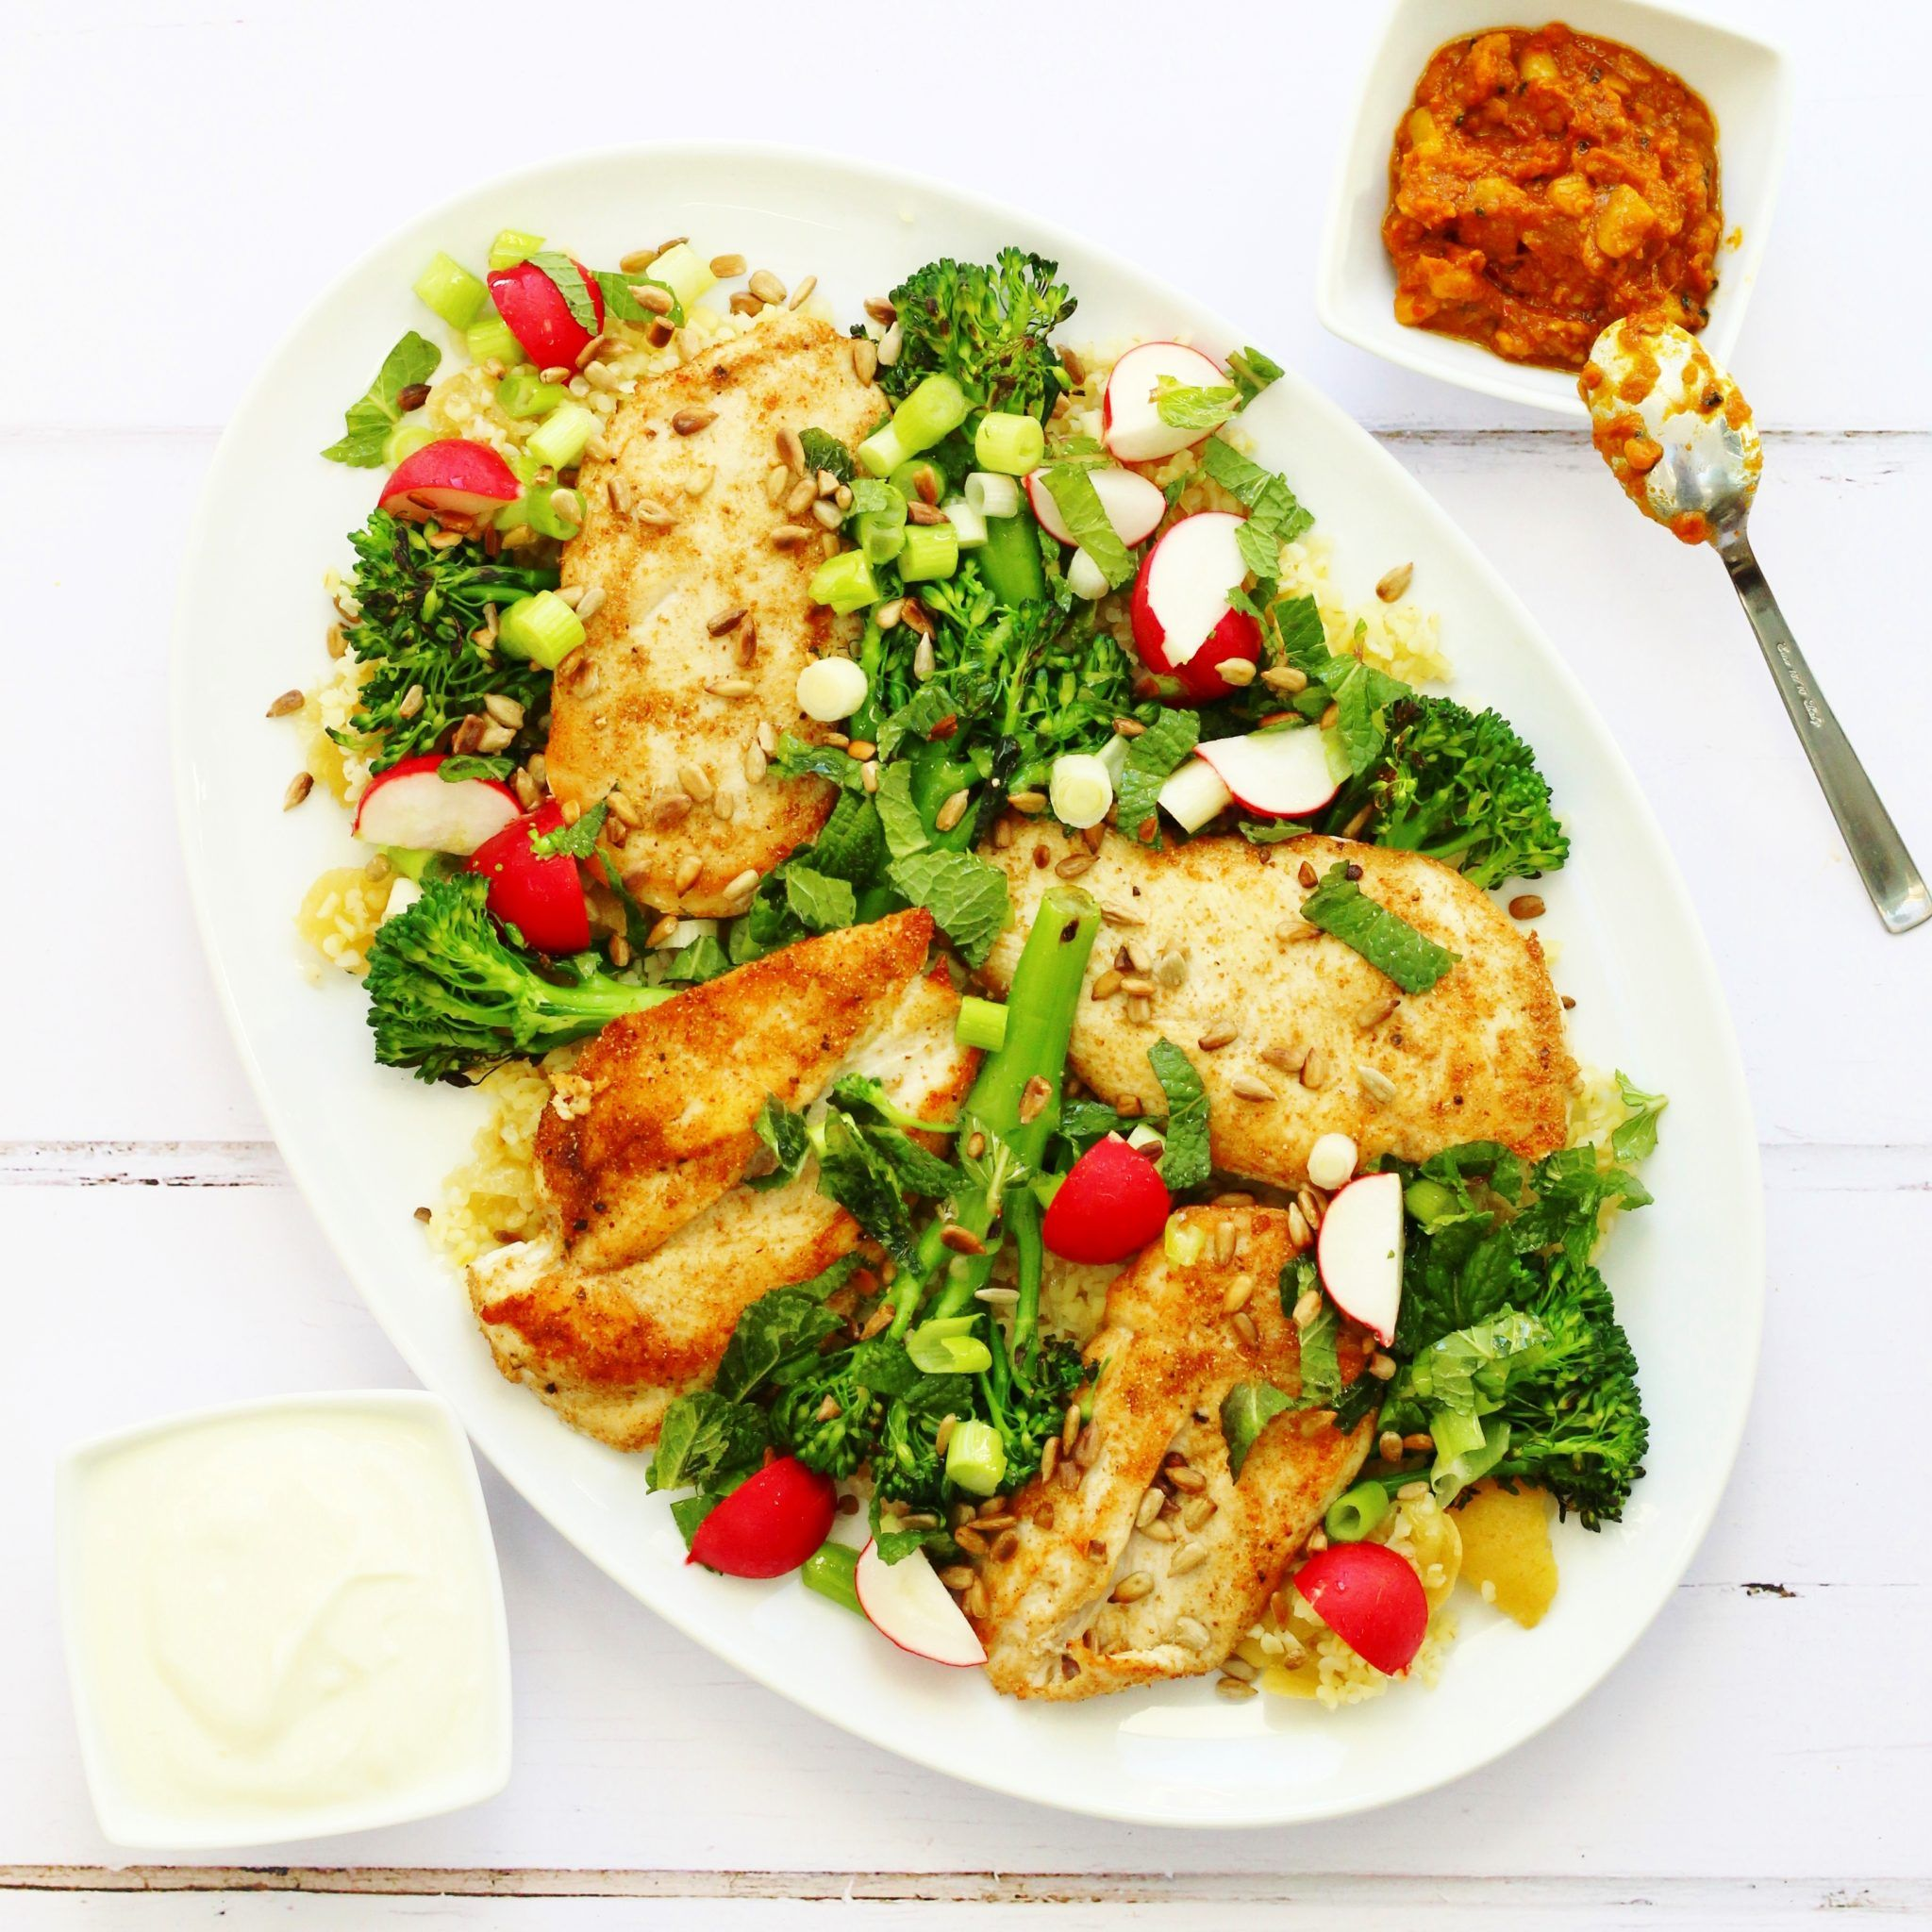 Jamie Oliver 15 Min Küche Jamie Oliver S Chicken Broccoli And Bulgur Wheat Salad Searching